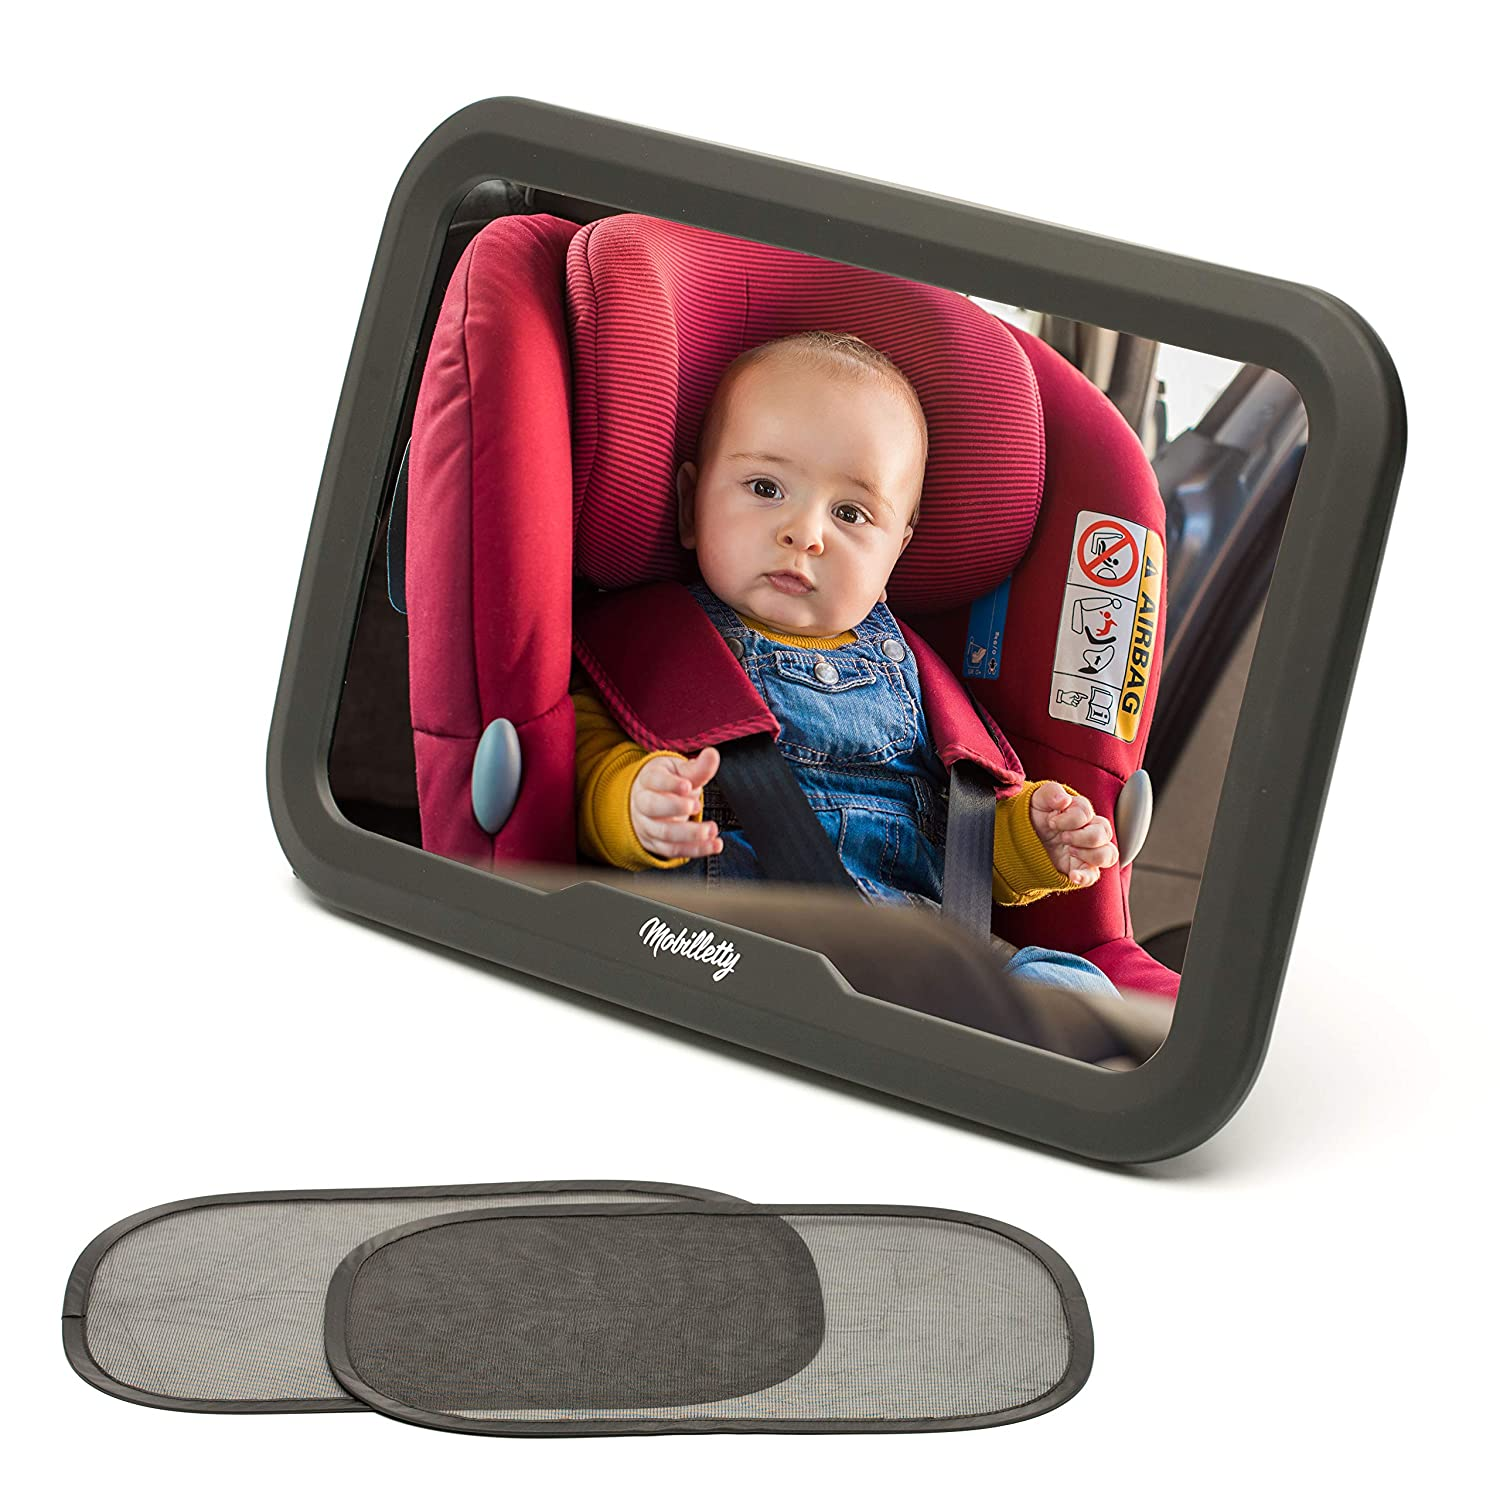 Baby Car Mirror for Back Seat - Infant Car Seat Mirror Rear Facing - Adjustable Baby Backseat Mirror for Car - Headrest Rearview Mirror Baby - Baby Car Accessories